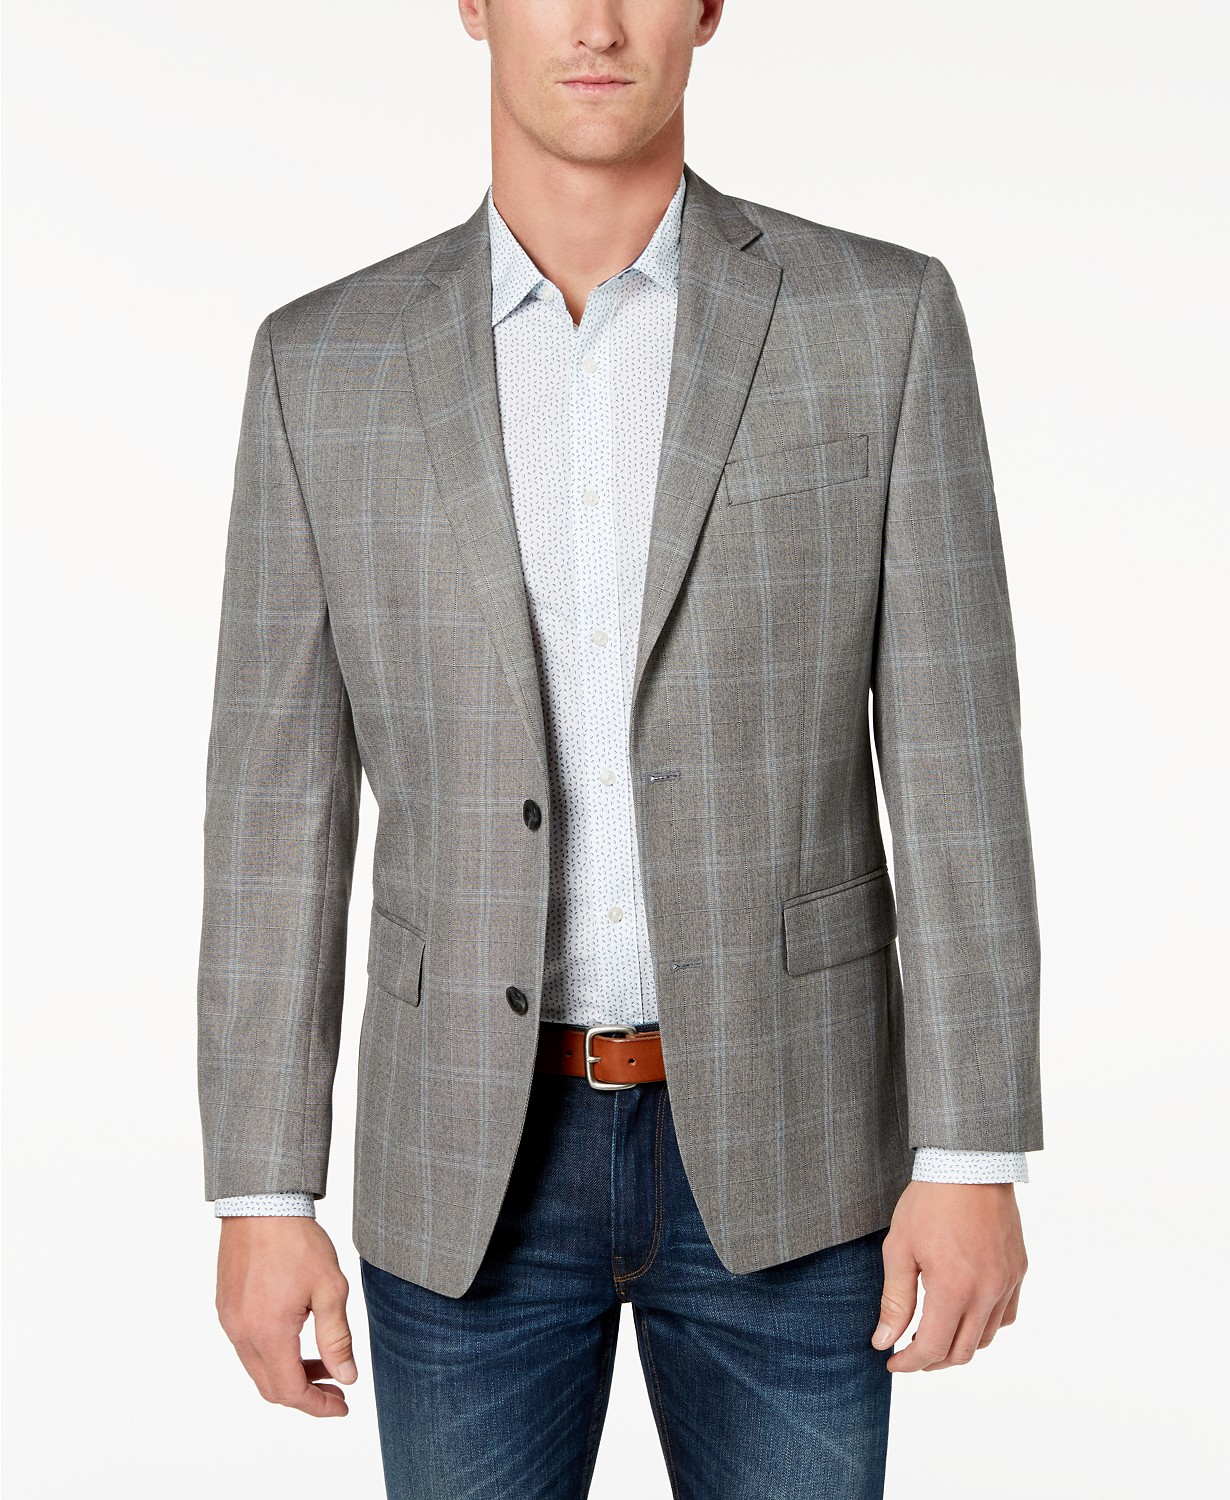 Michael Kors Mens Classic-Fit Grey Plaid Sport Coat